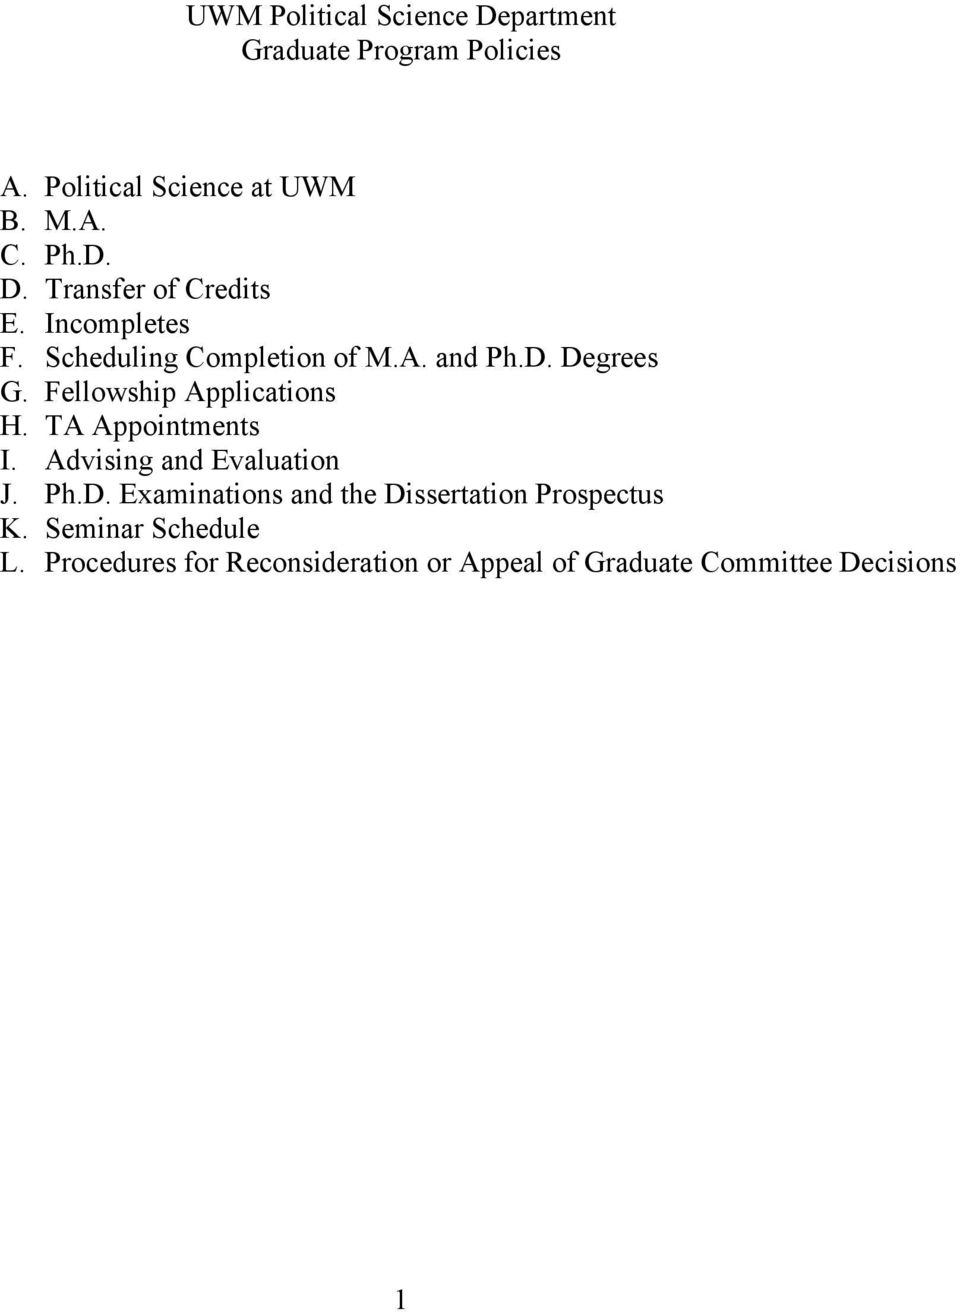 TA Appointments I. Advising and Evaluation J. Ph.D. Examinations and the Dissertation Prospectus K.